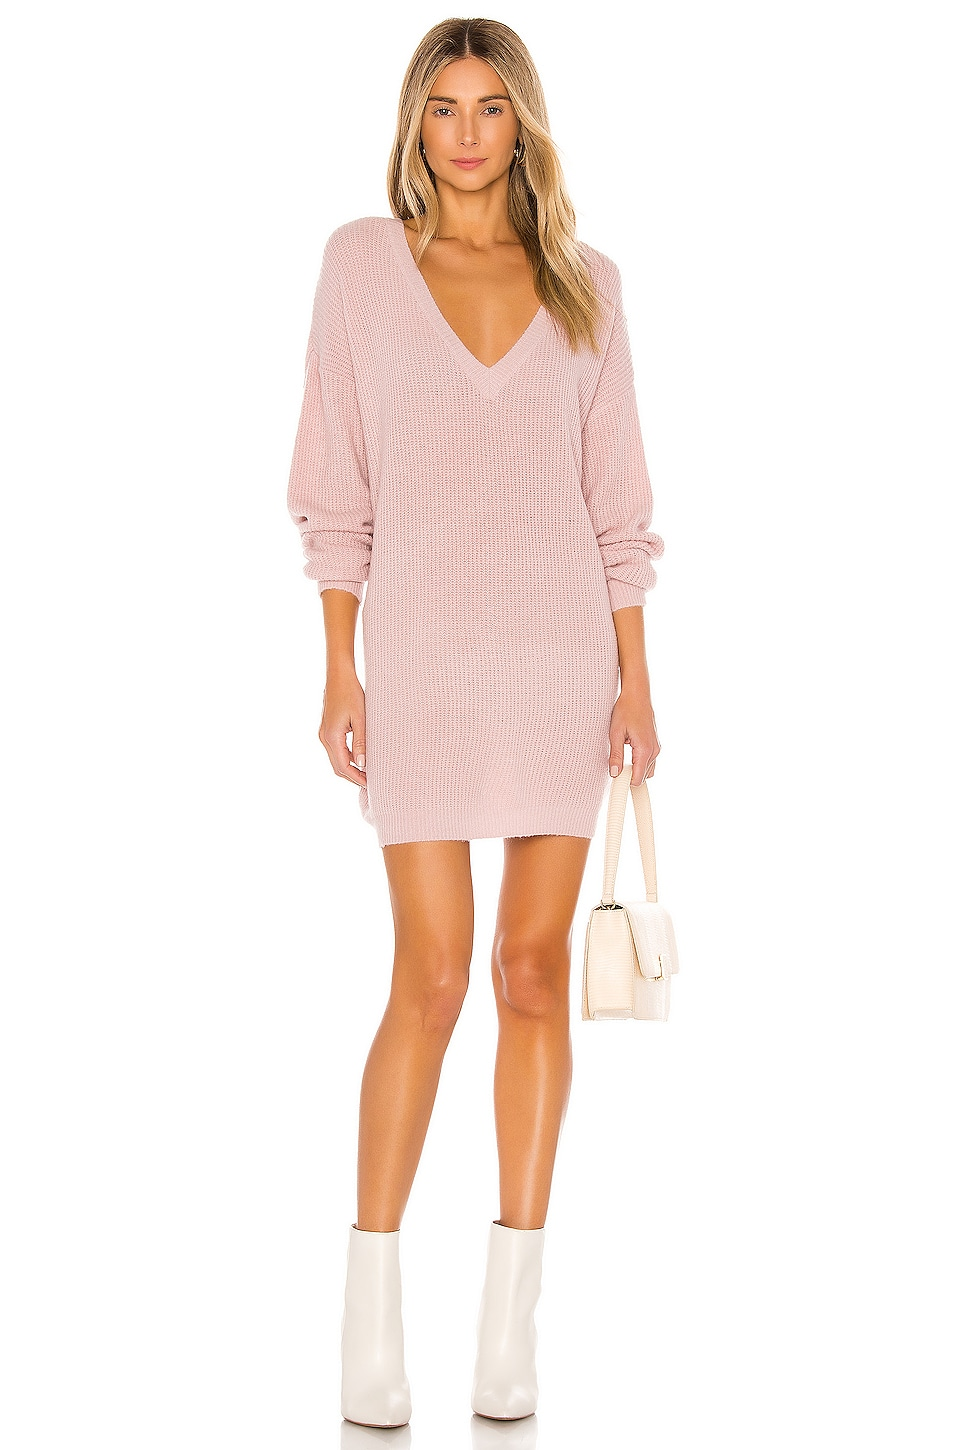 X REVOLVE Berto Sweater Dress                   John & Jenn by Line                                                                                                                             CA$ 128.16 1